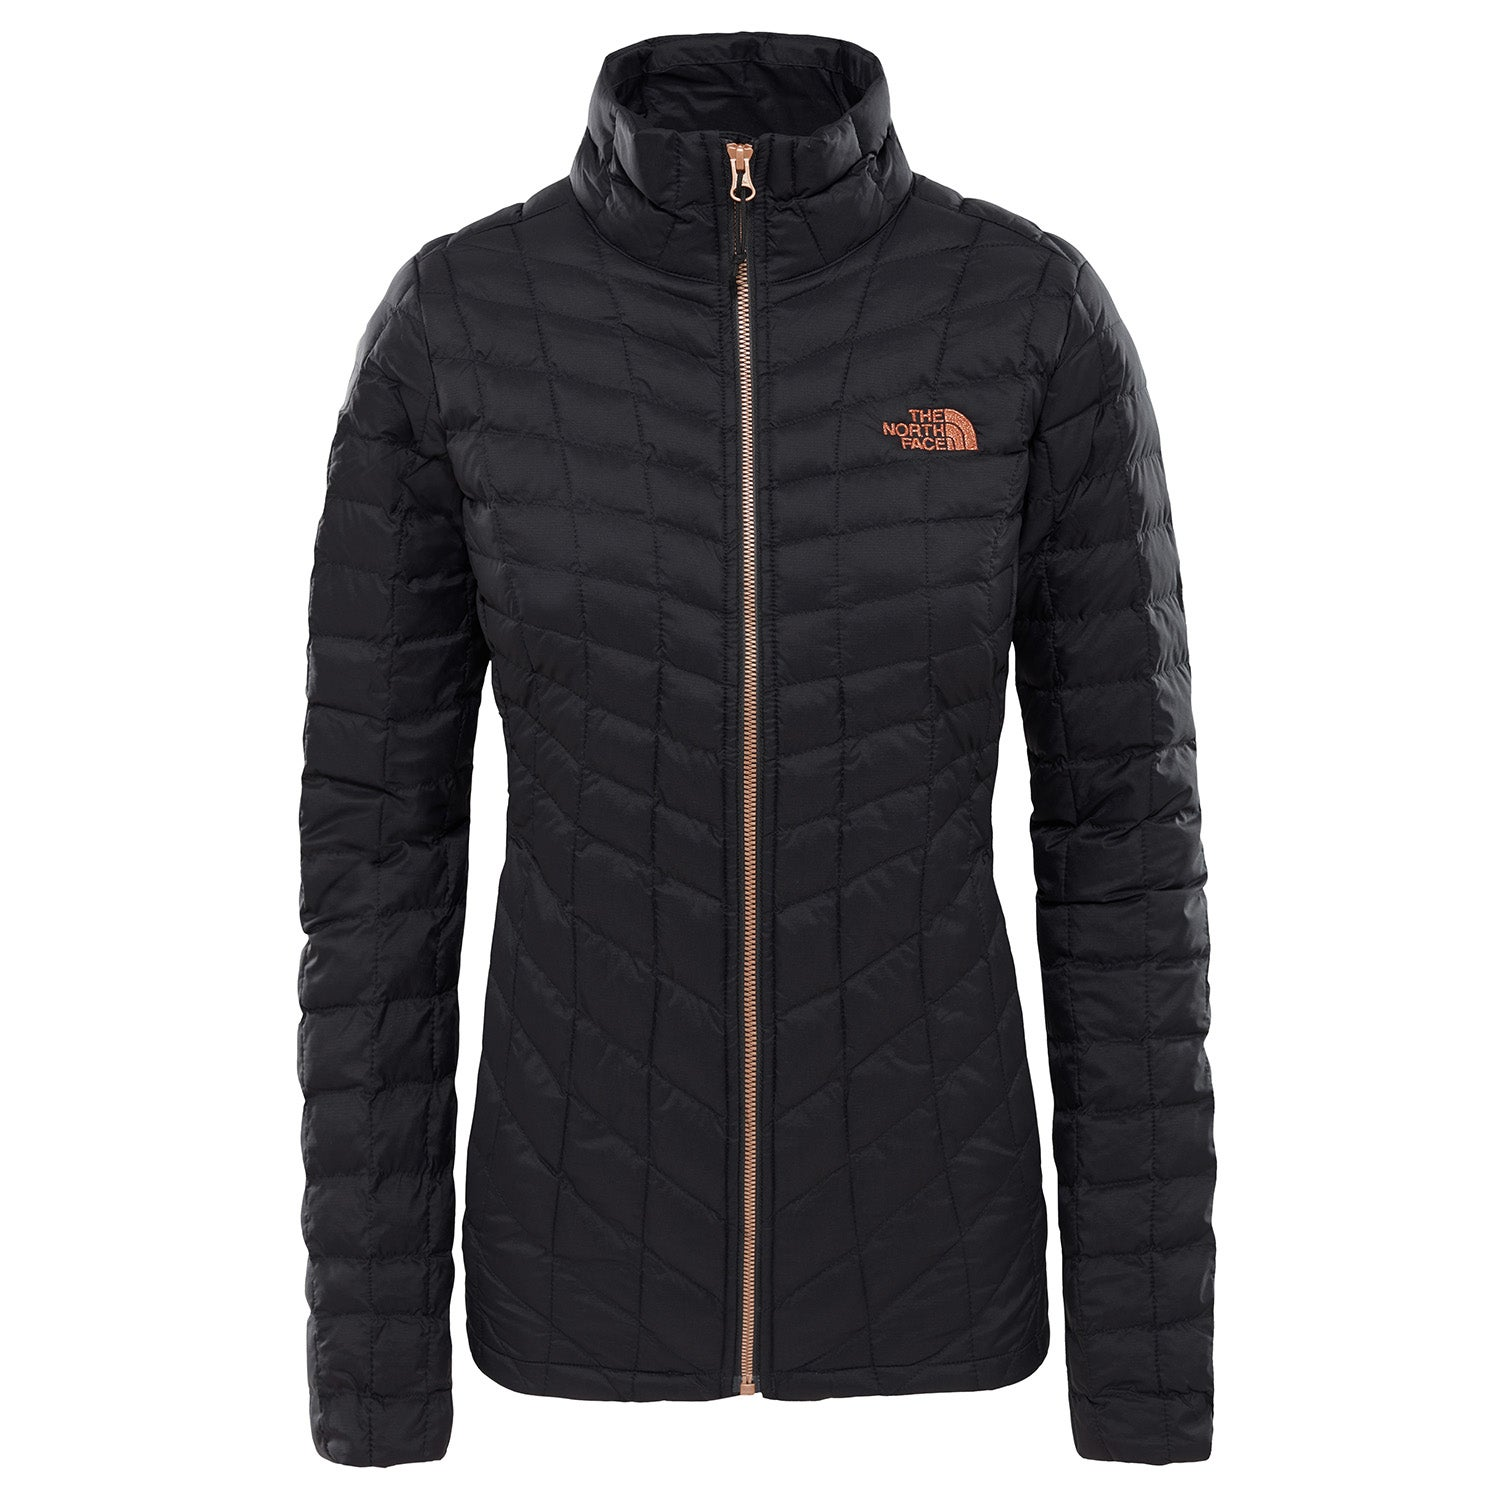 023b9e3a0 North Face Thermoball Full Zip Womens Jacket